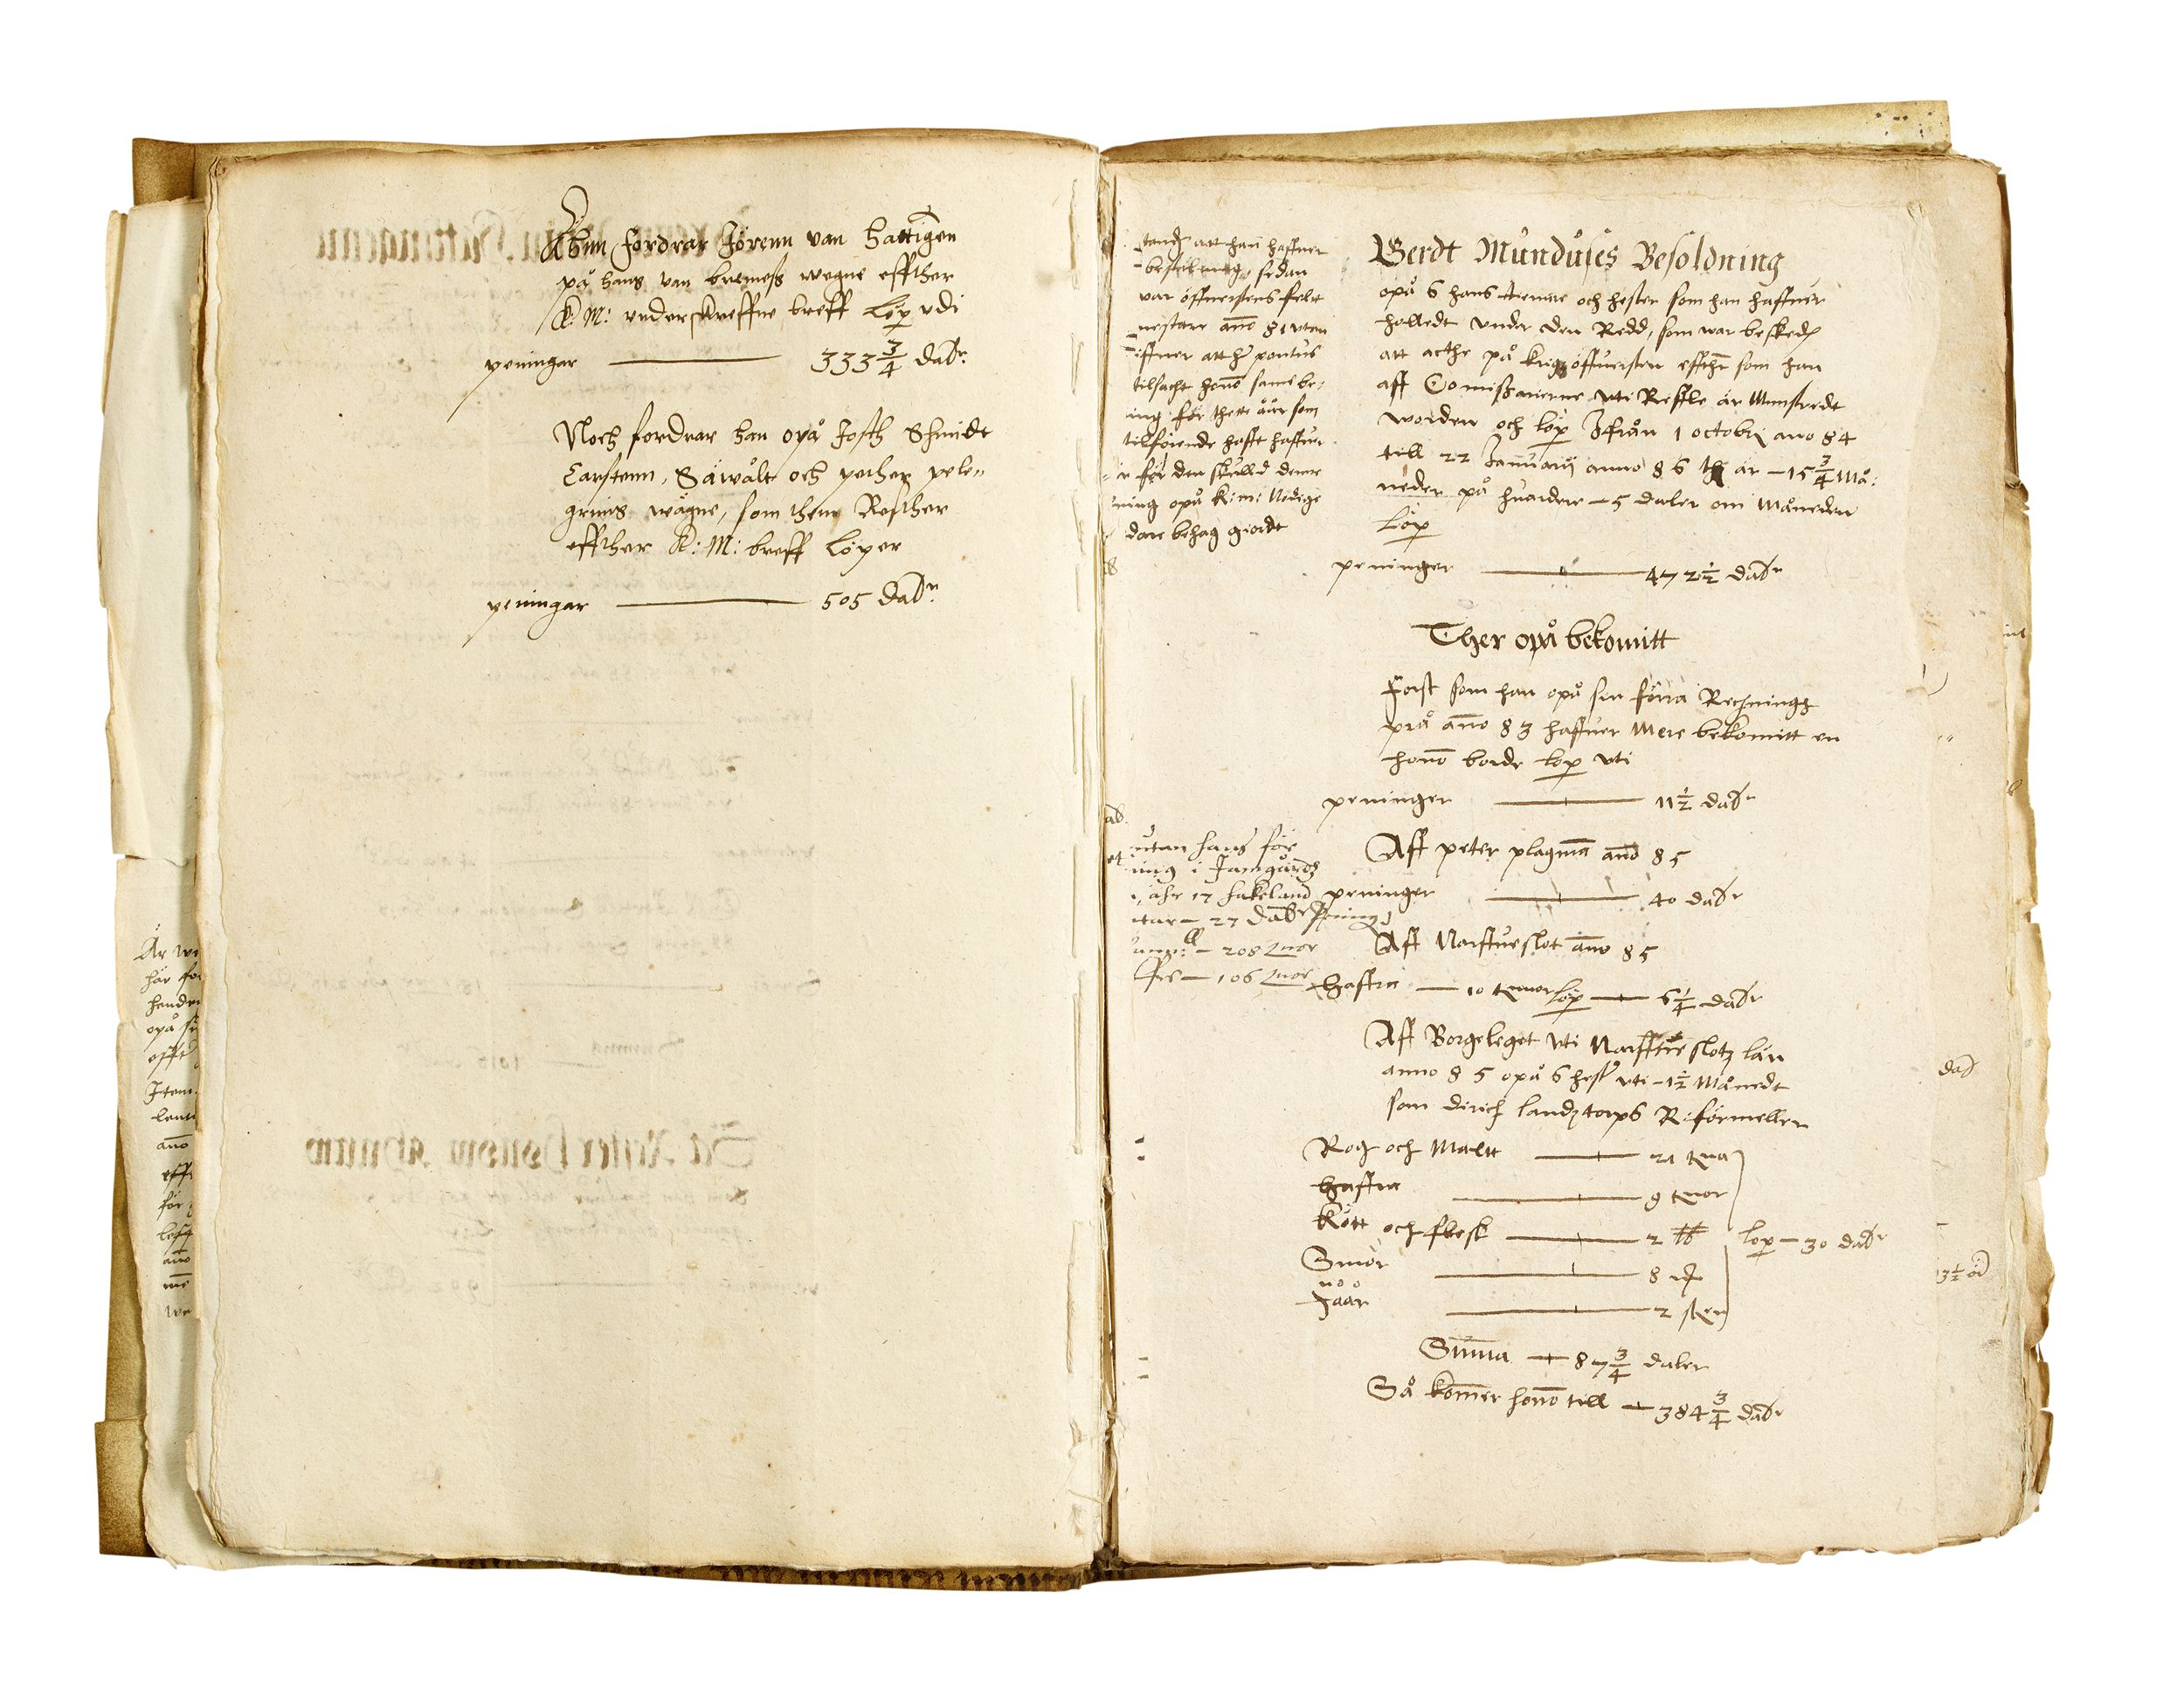 Manuscript regarding payments to mercenaries 1585